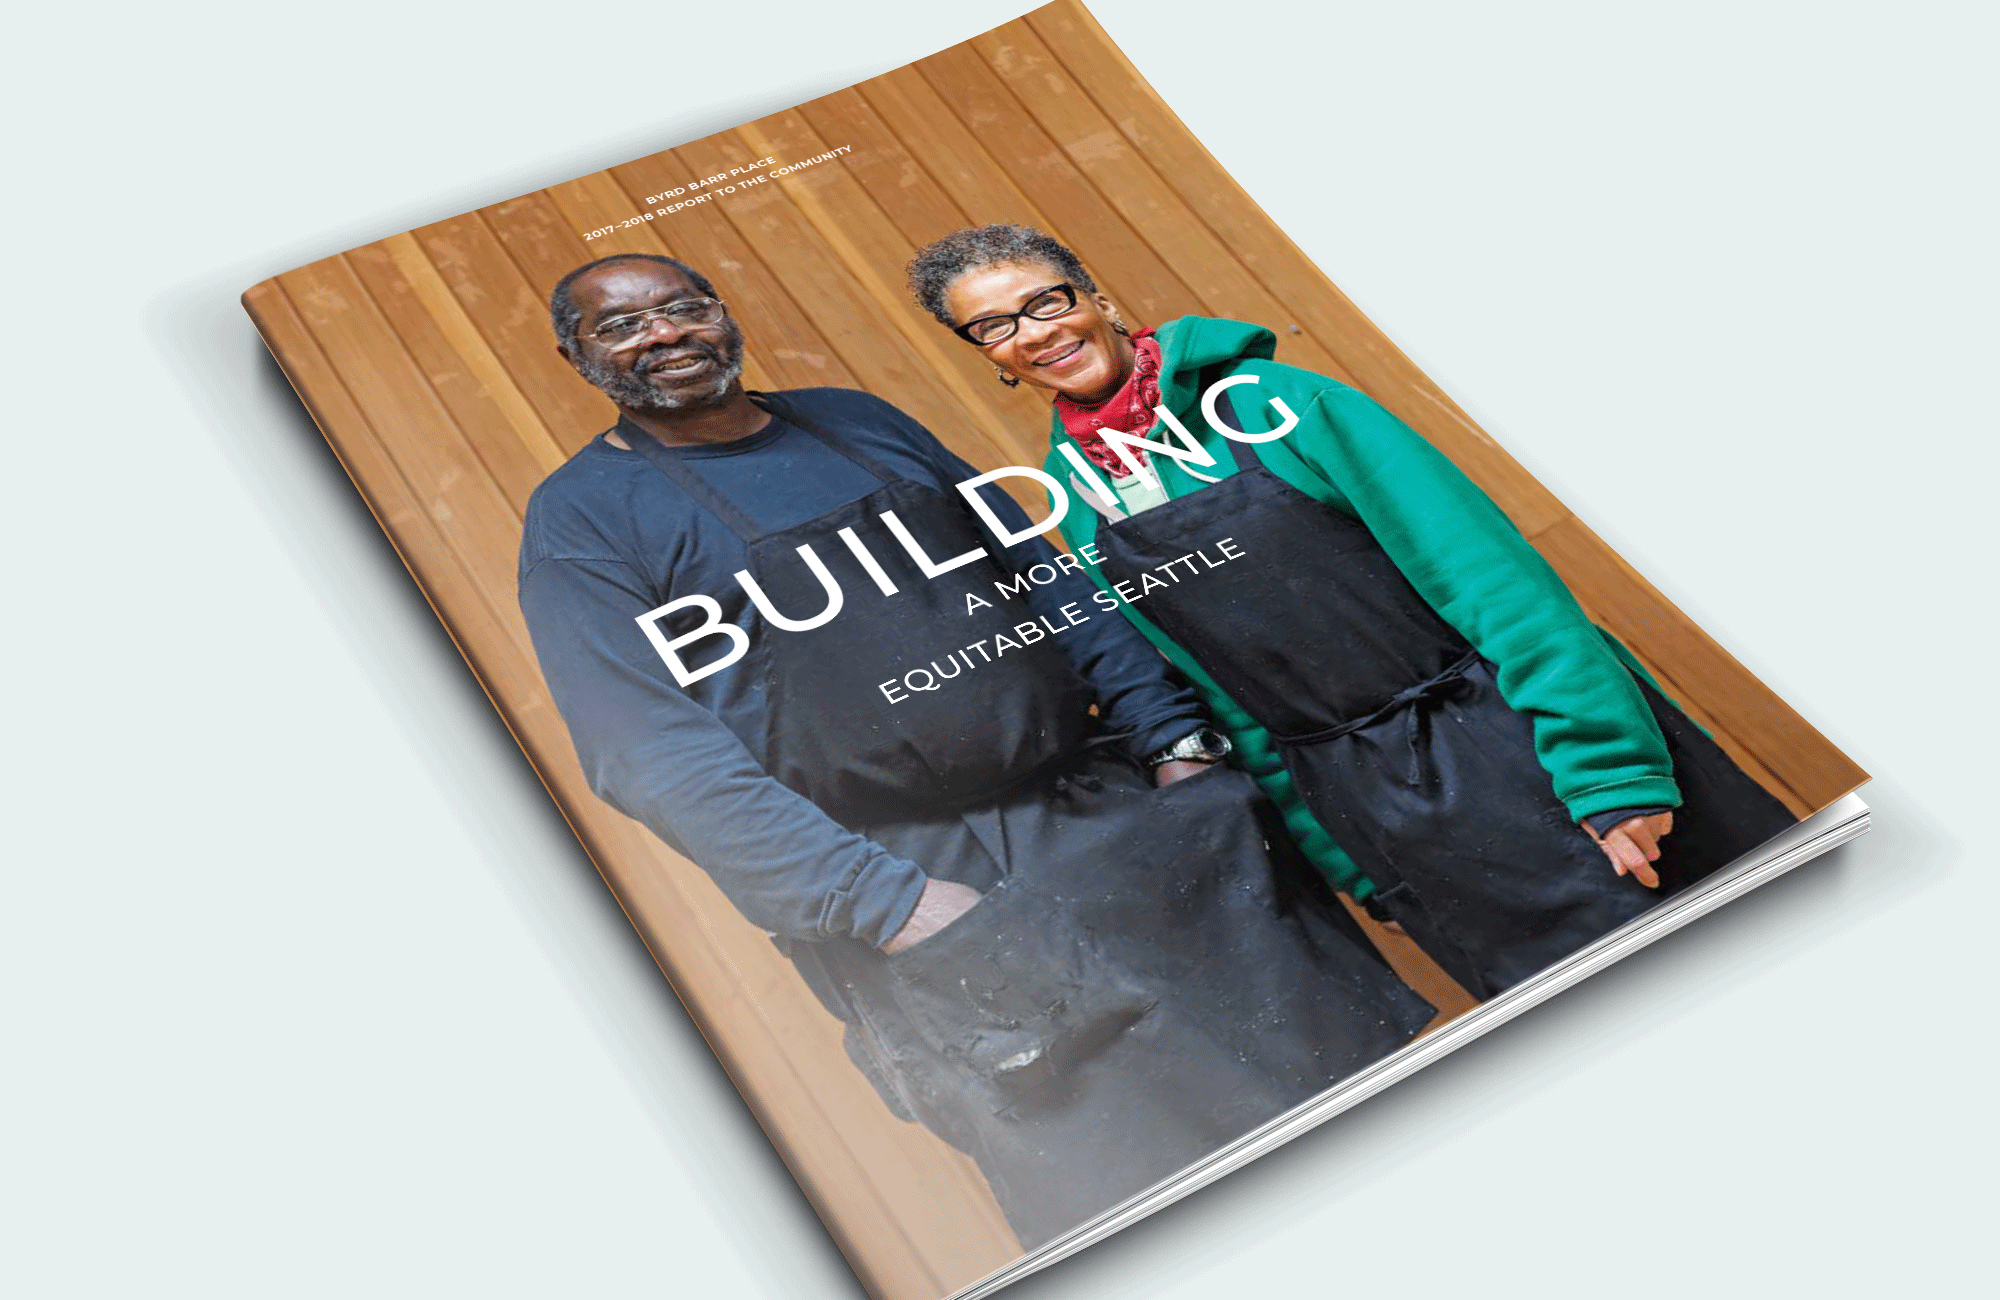 LATEST TO LAUNCH - Byrd Barr Place, founded in the era of the Economic Opportunity Act of 1964, helps people move from poverty to self-sufficiency, and builds the Black community's political strength and economic wealth in Seattle. Hot off the press is the Annual Report that powerfully captures the impact this organization has made in the last two years.